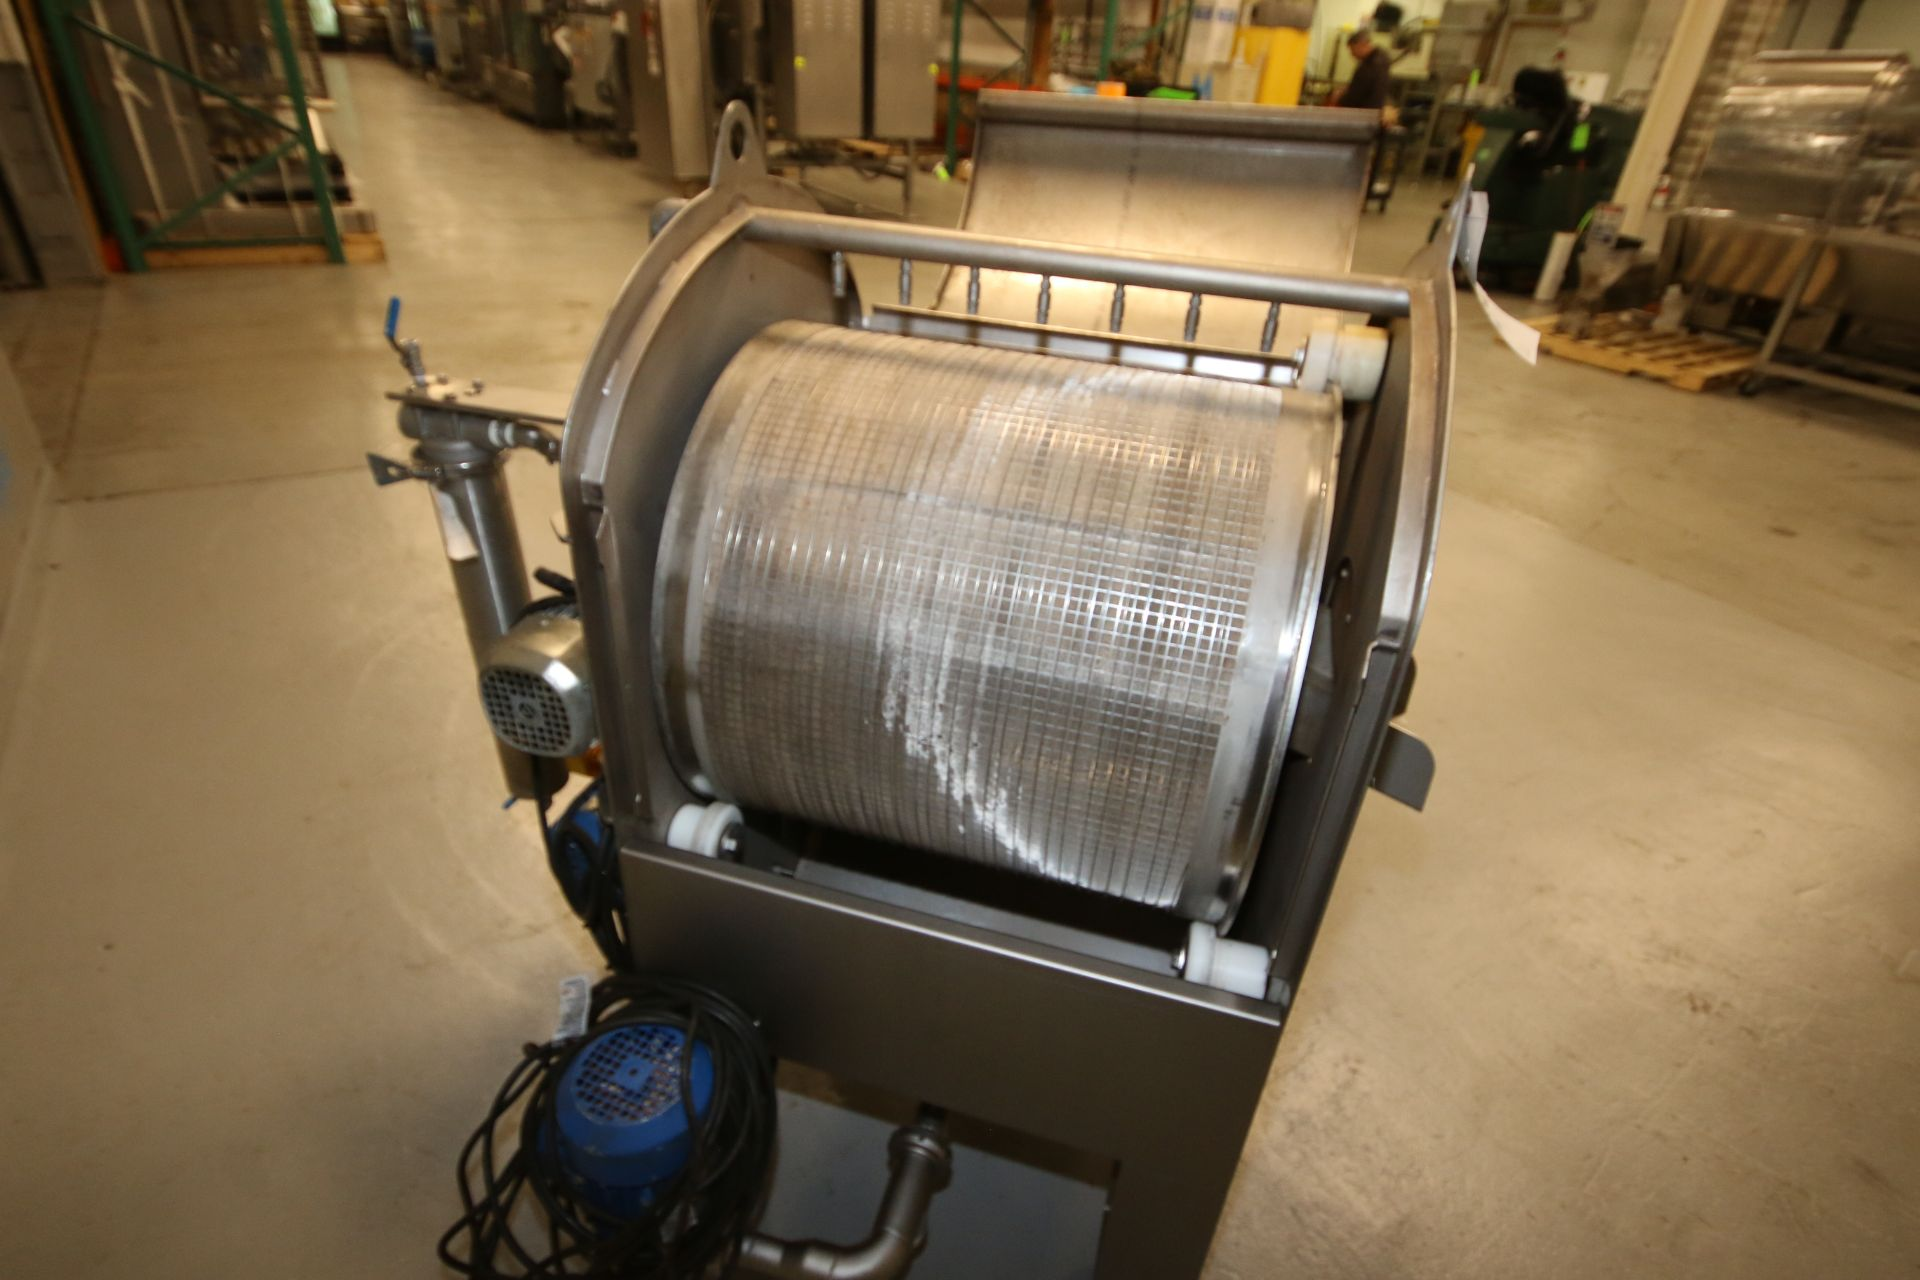 """Lot 31 - 2012 Le Materiel Pera S/S Sifter, Type PRF600, S/N 105583, with PALL S/S Filter, Aprox. 21"""" L x 3-"""